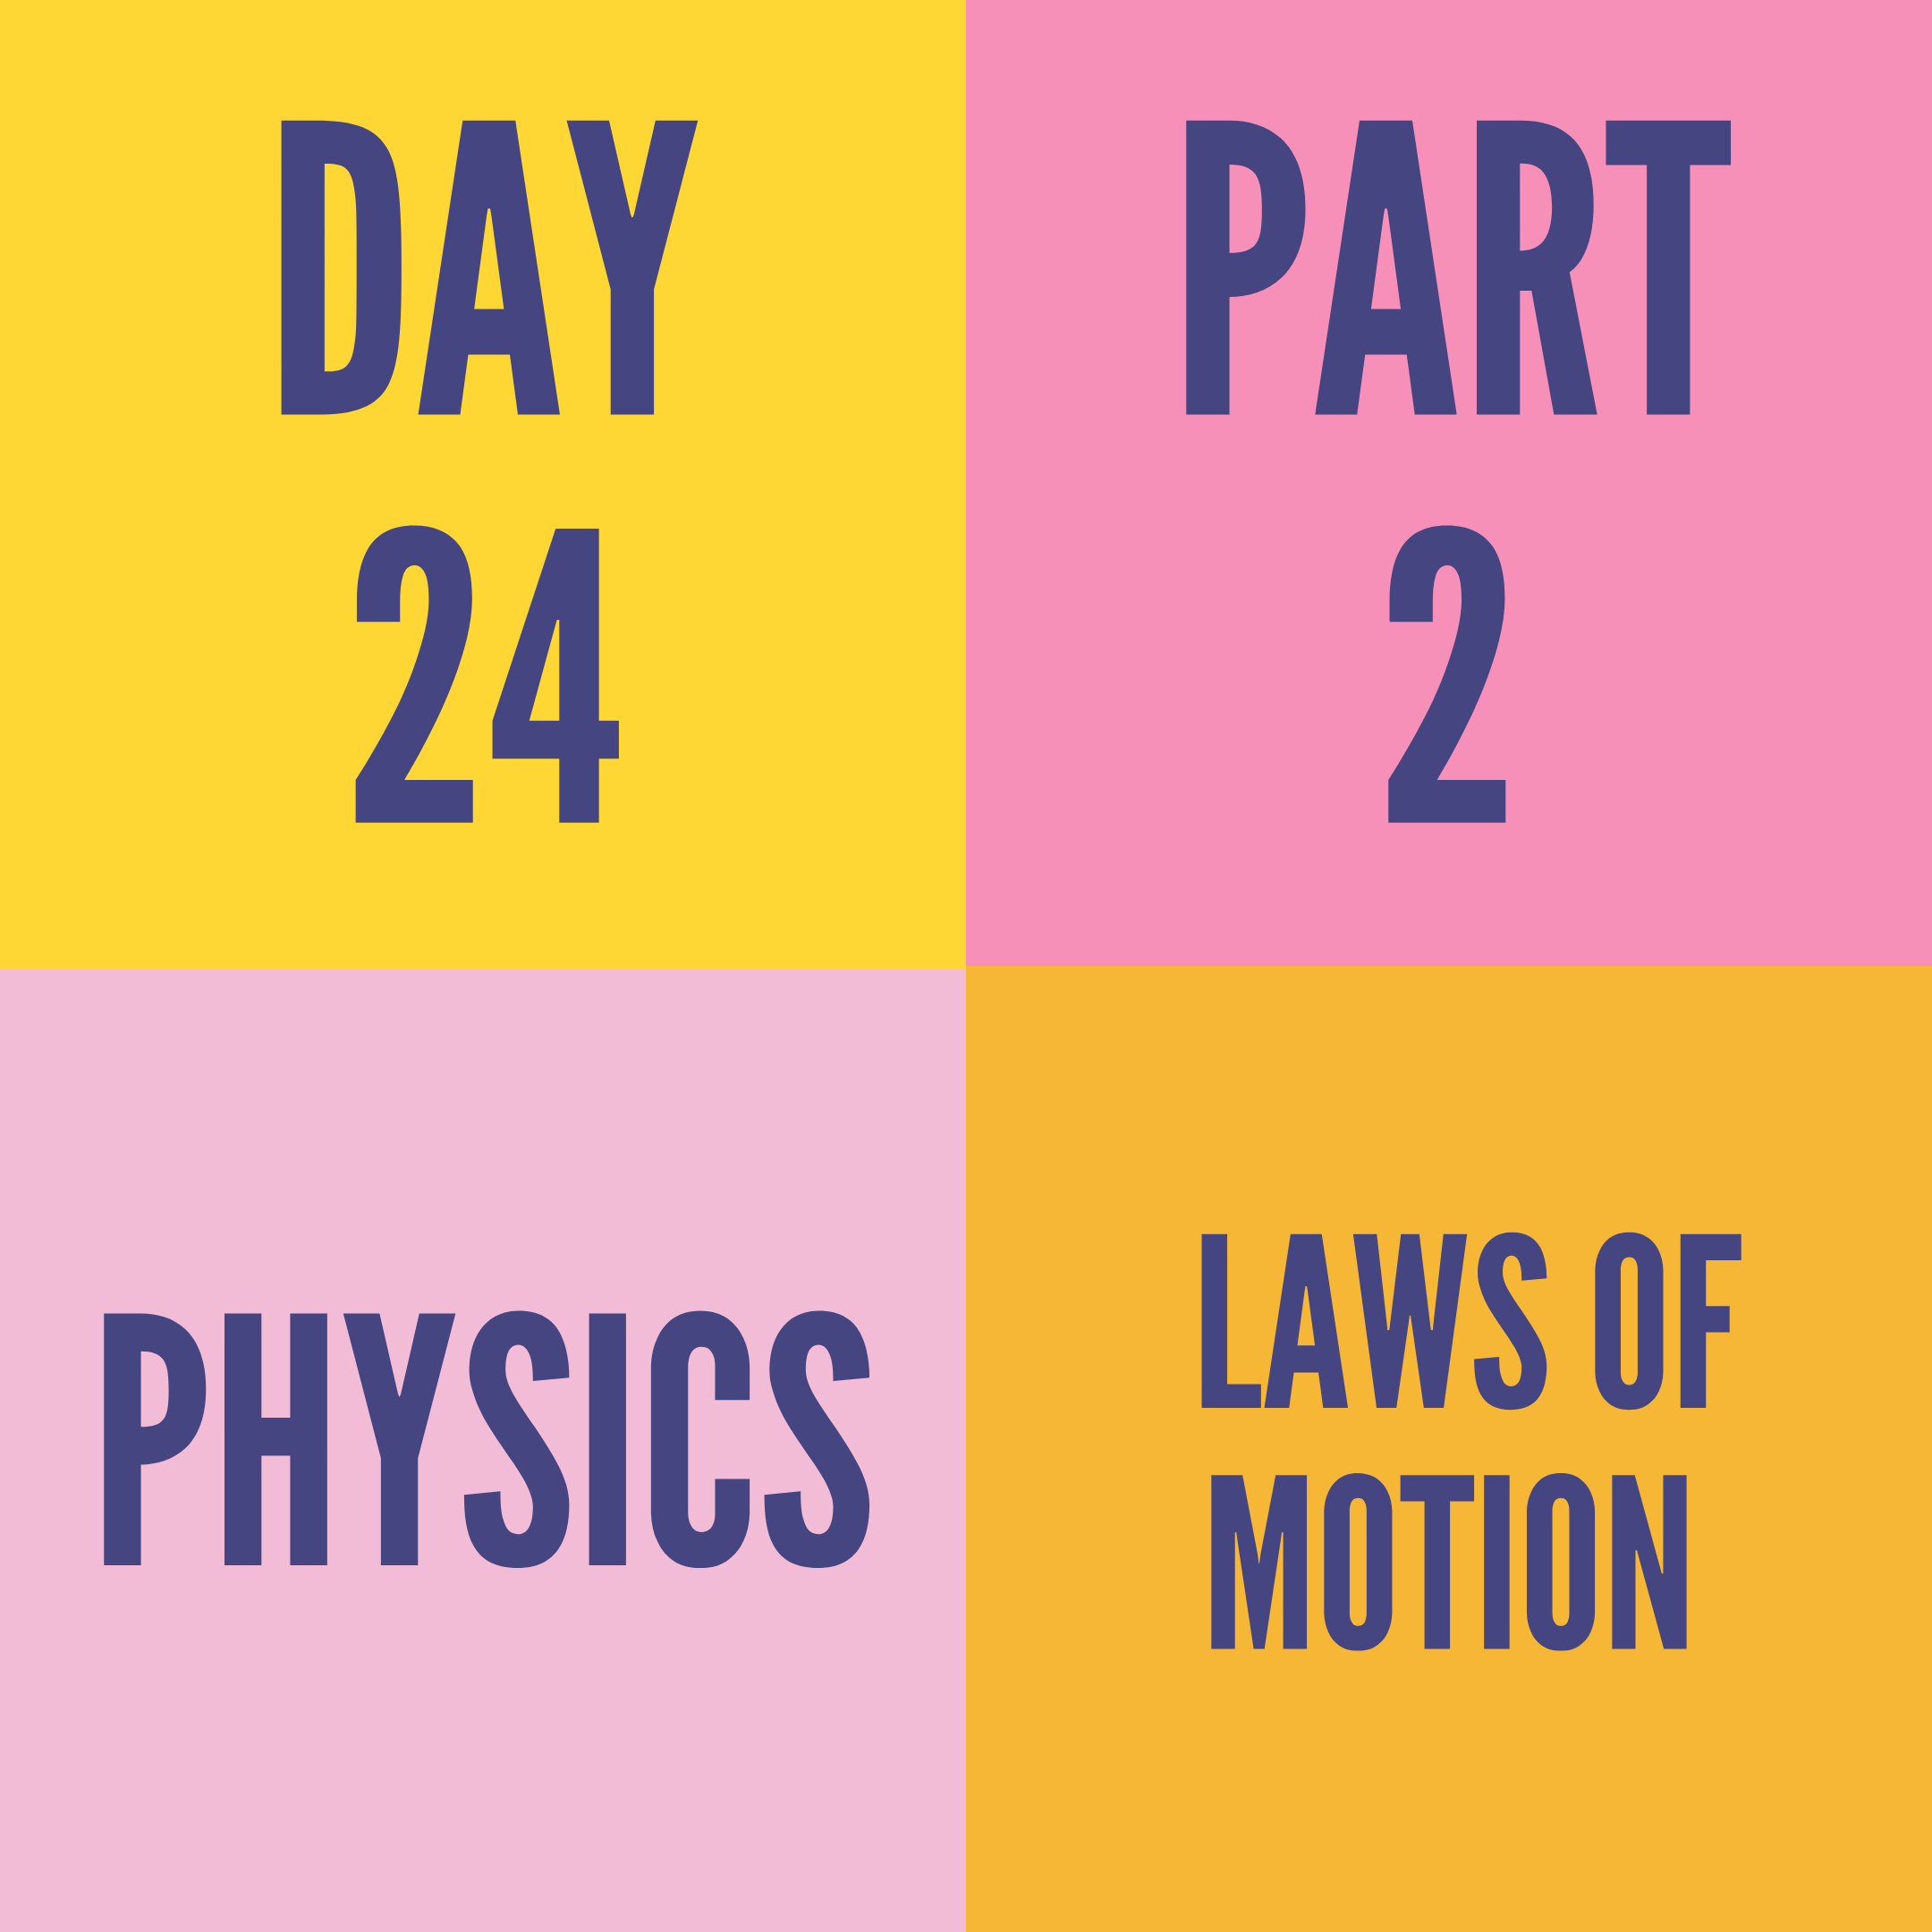 DAY-24 PART-2 LAWS OF MOTION